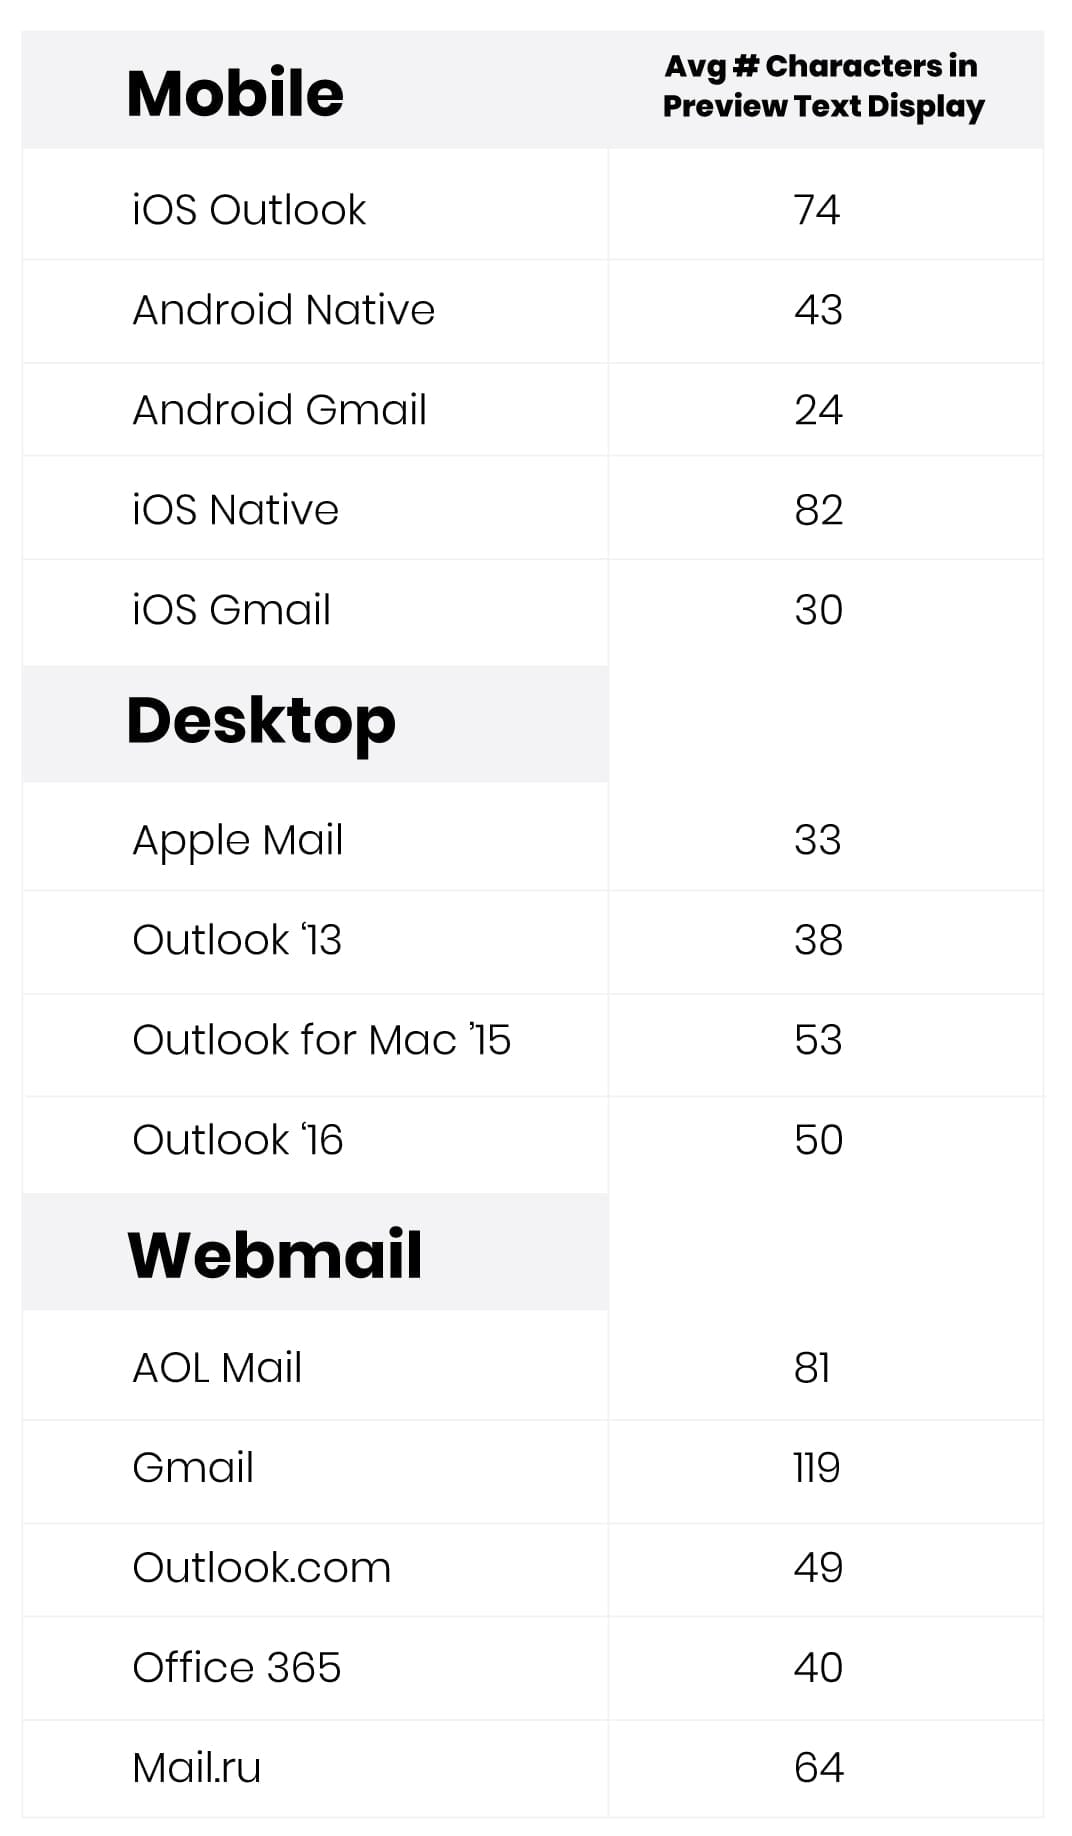 Mobile preview text ranges from 30-80 characters, while webmail affords 40-120.